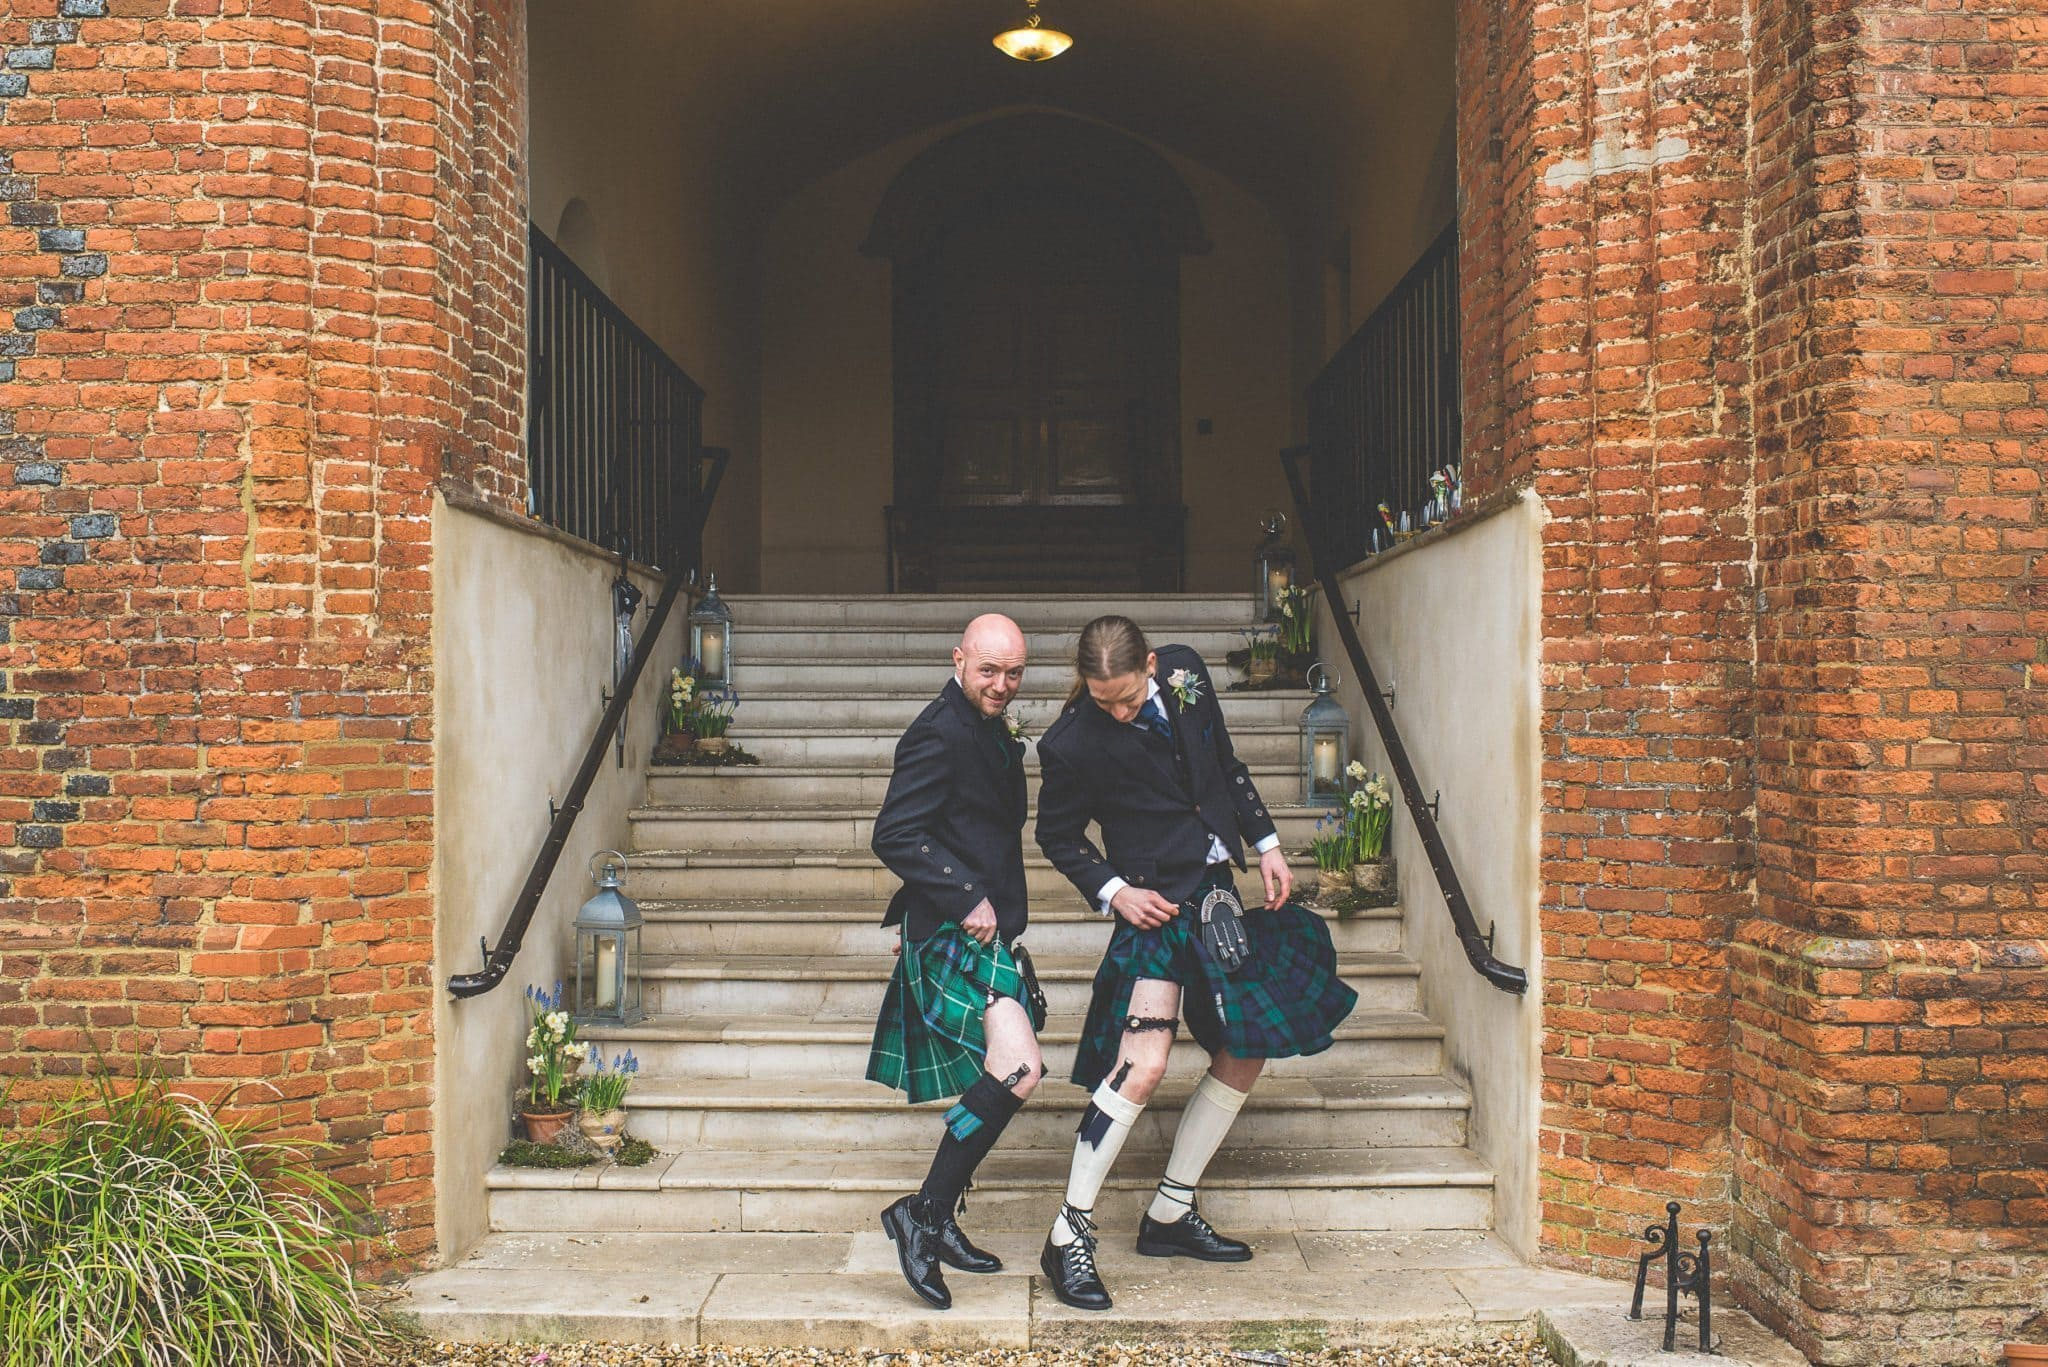 The groom and his best man strike a silly pose, and show off their snazzy knee socks.